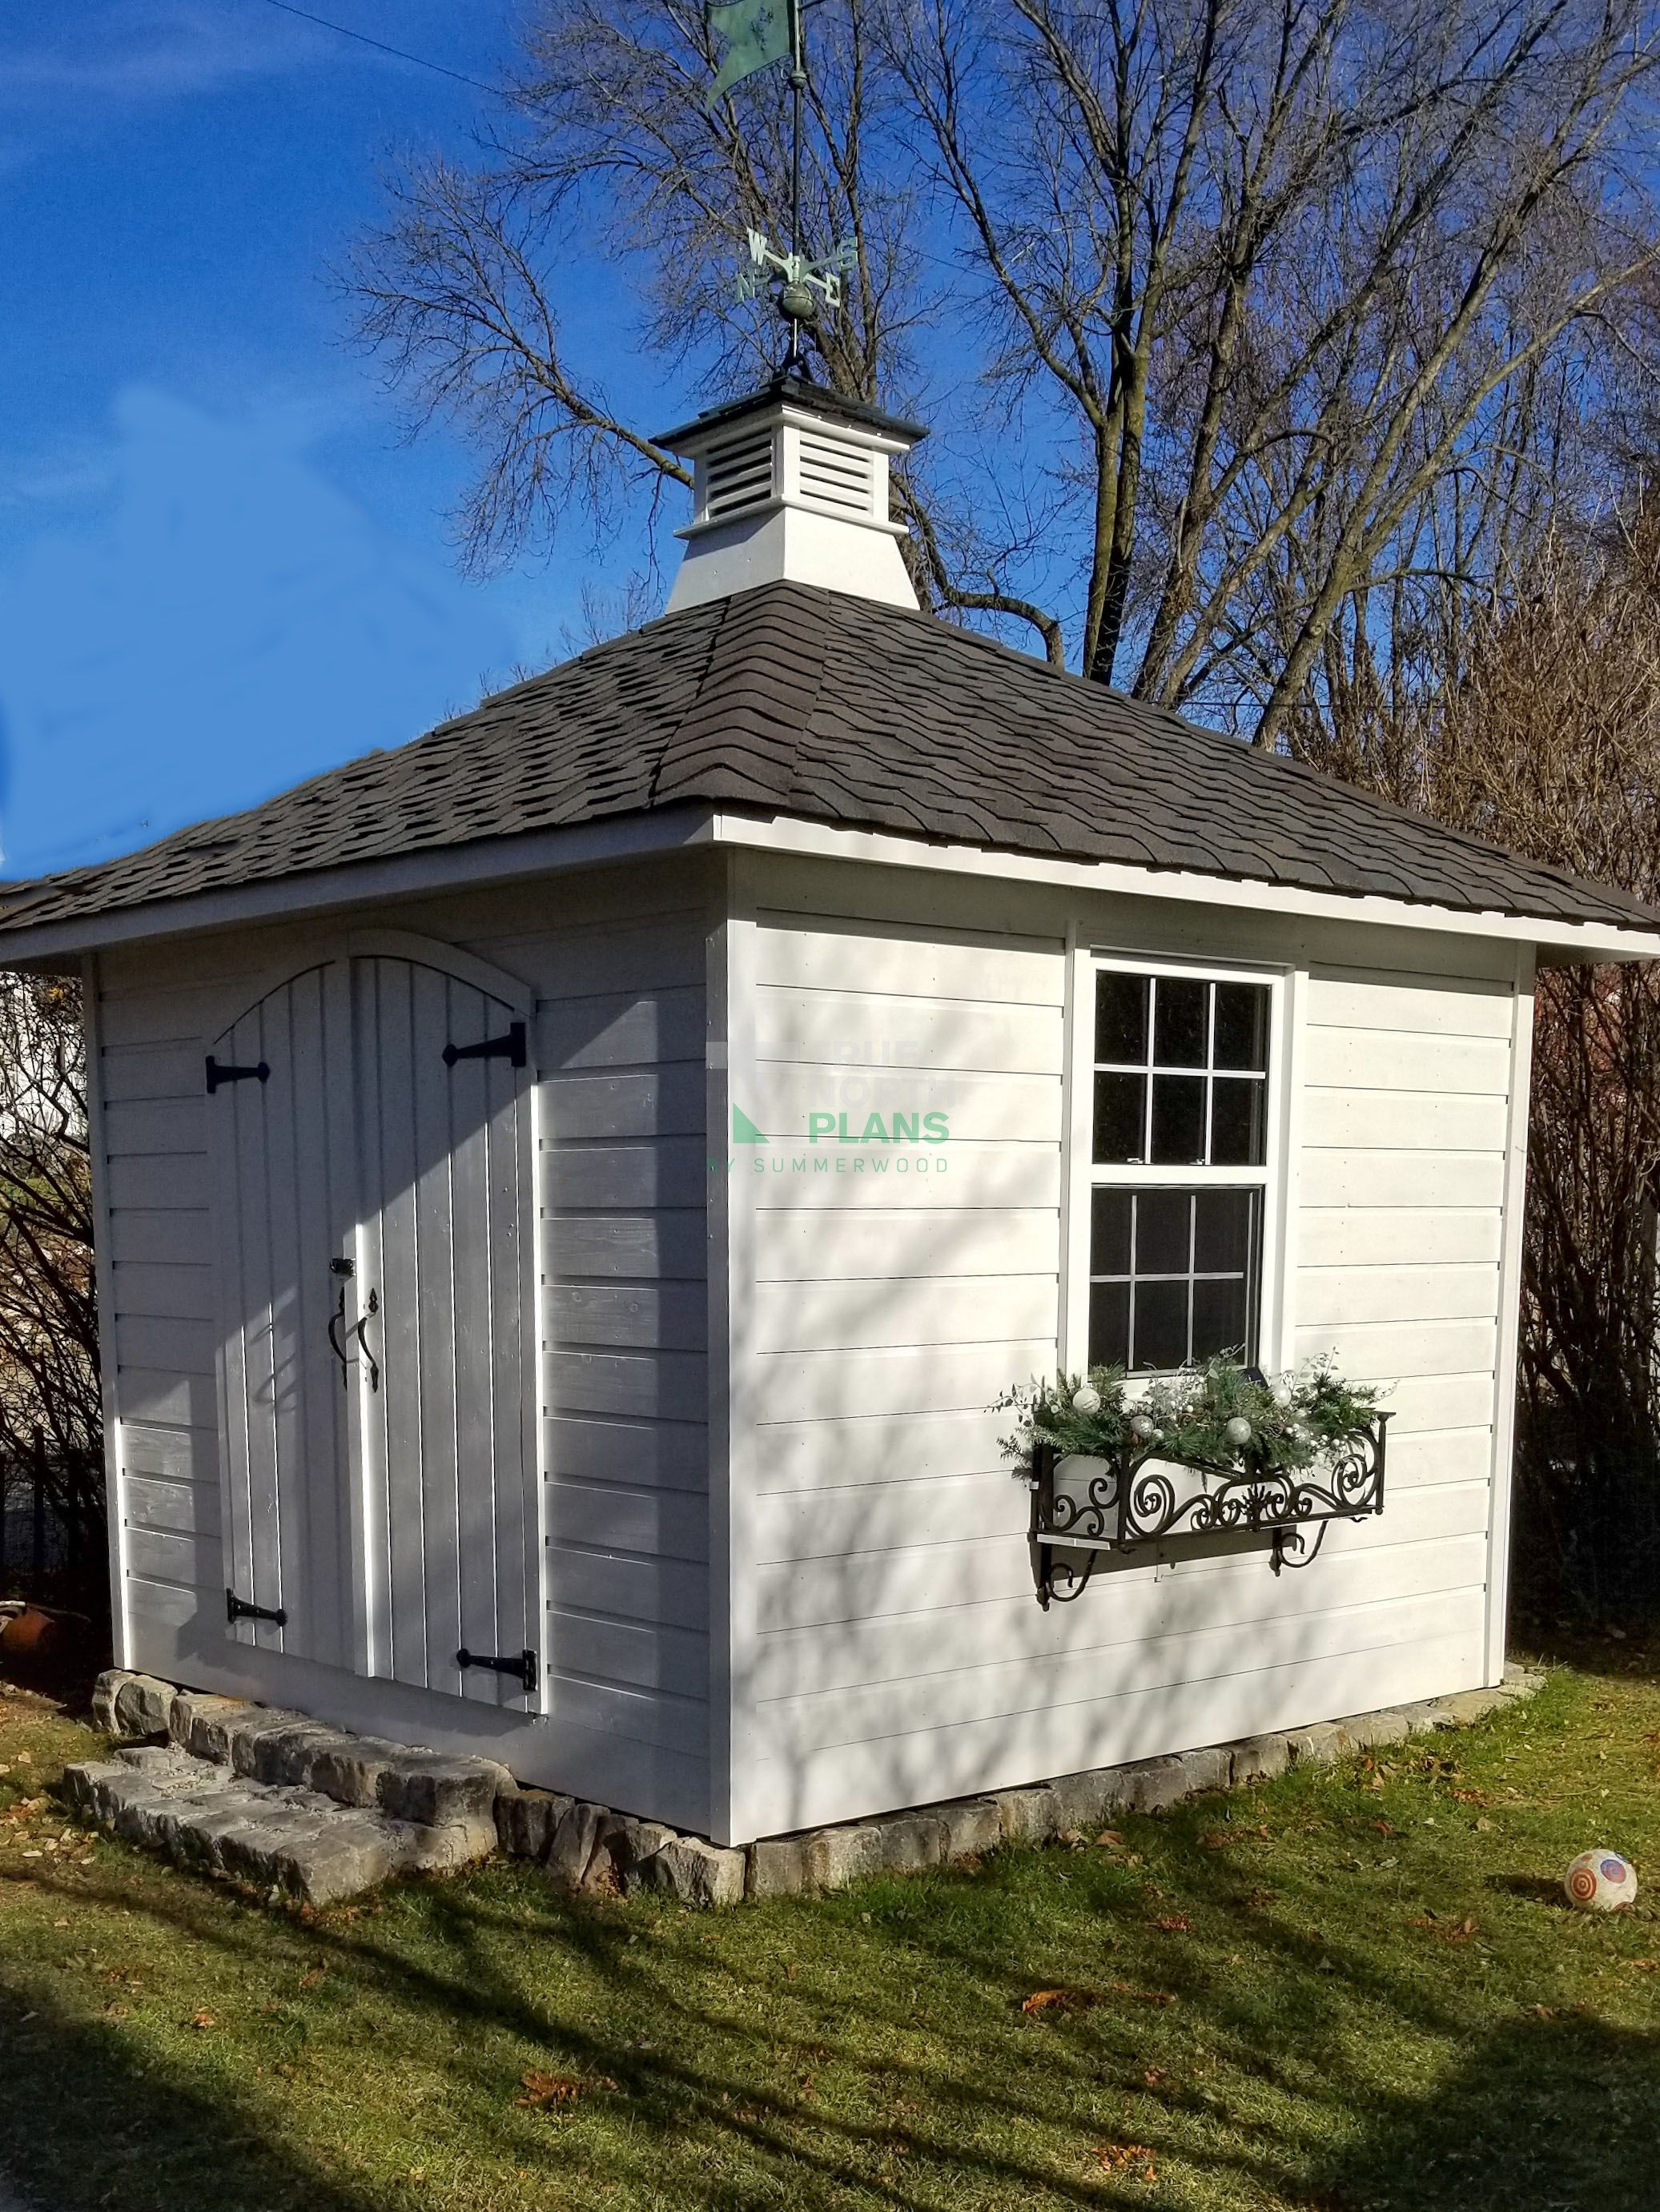 Sonoma 10x10 Garden Shed In St Paul Mn Diy Shed Plans Shed Plans Shed